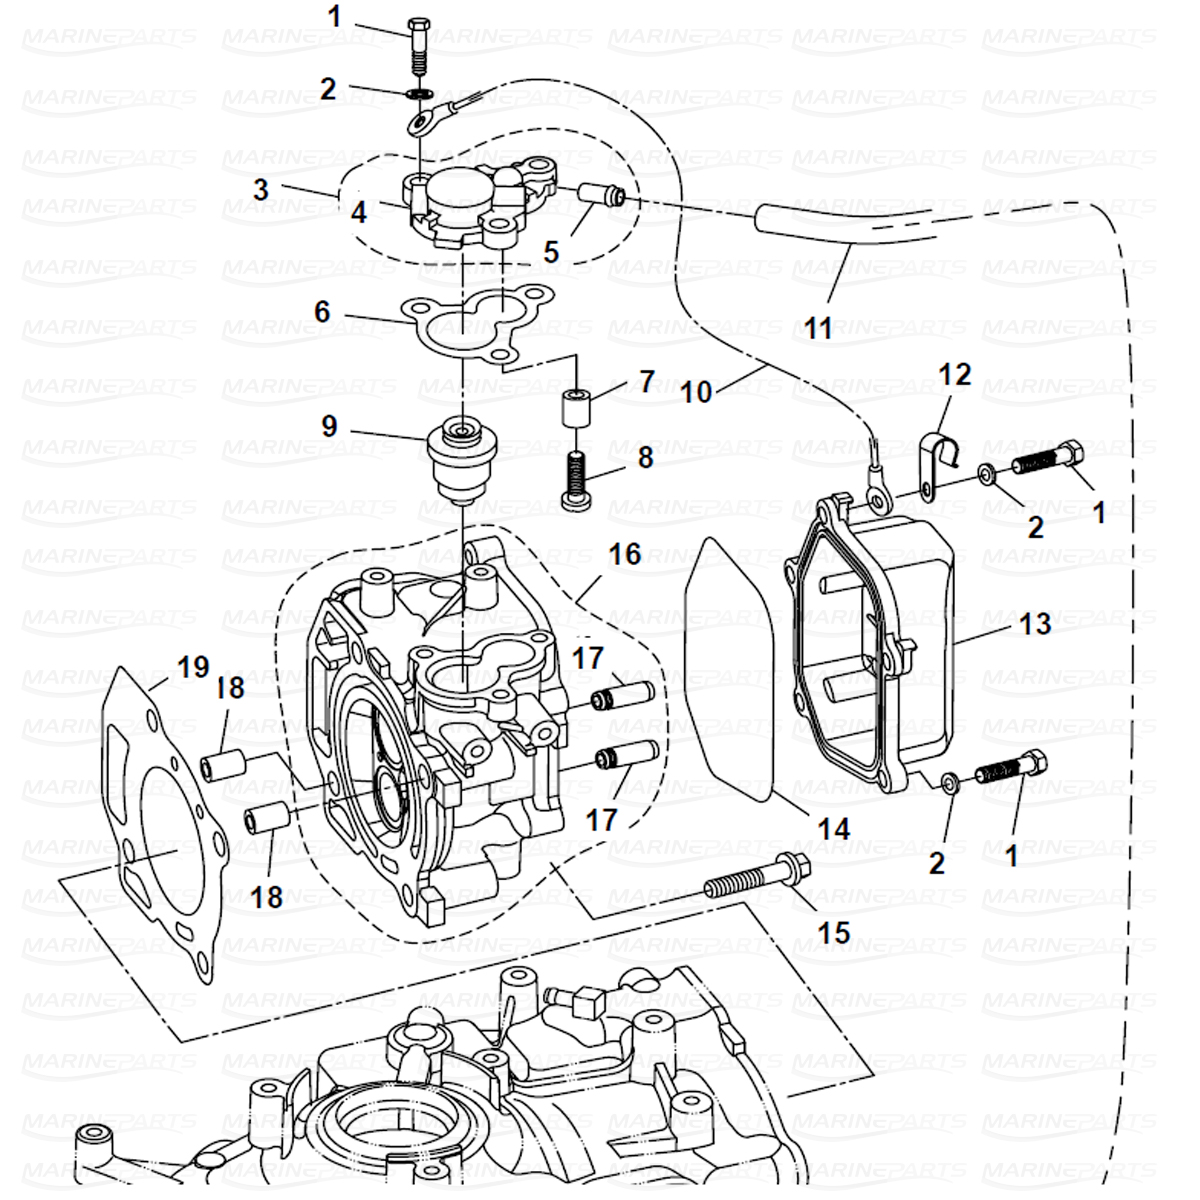 Exploded view cylinder head, Parsun 6 hp